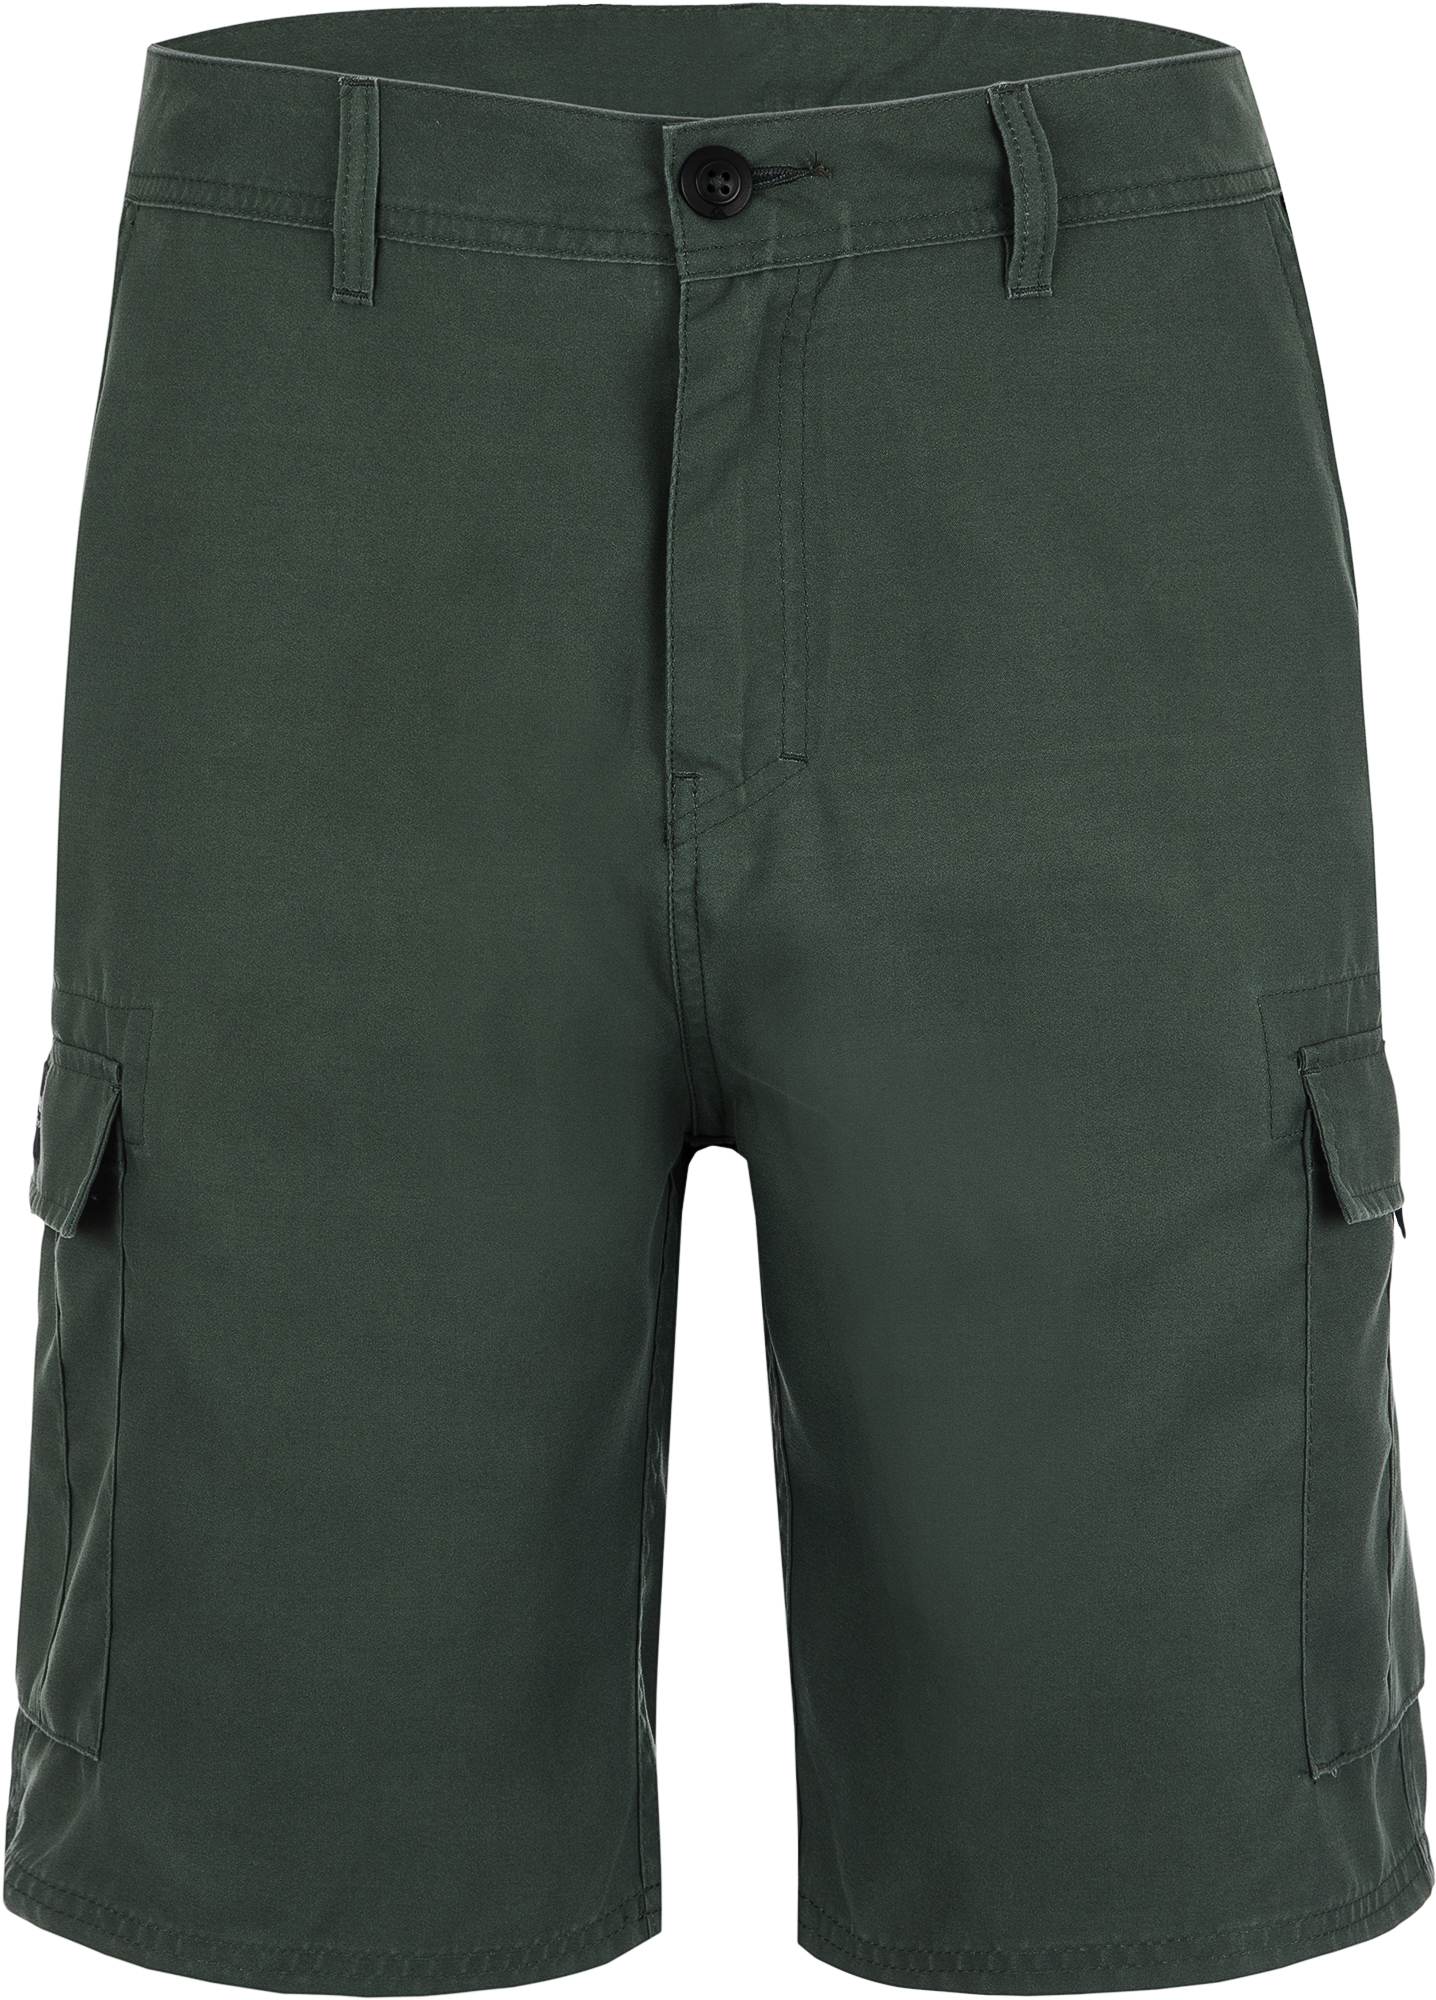 Quiksilver Шорты мужские Quiksilver, размер 50 quiksilver штаны прямые детские quiksilver thick wood baby i pant blue salted